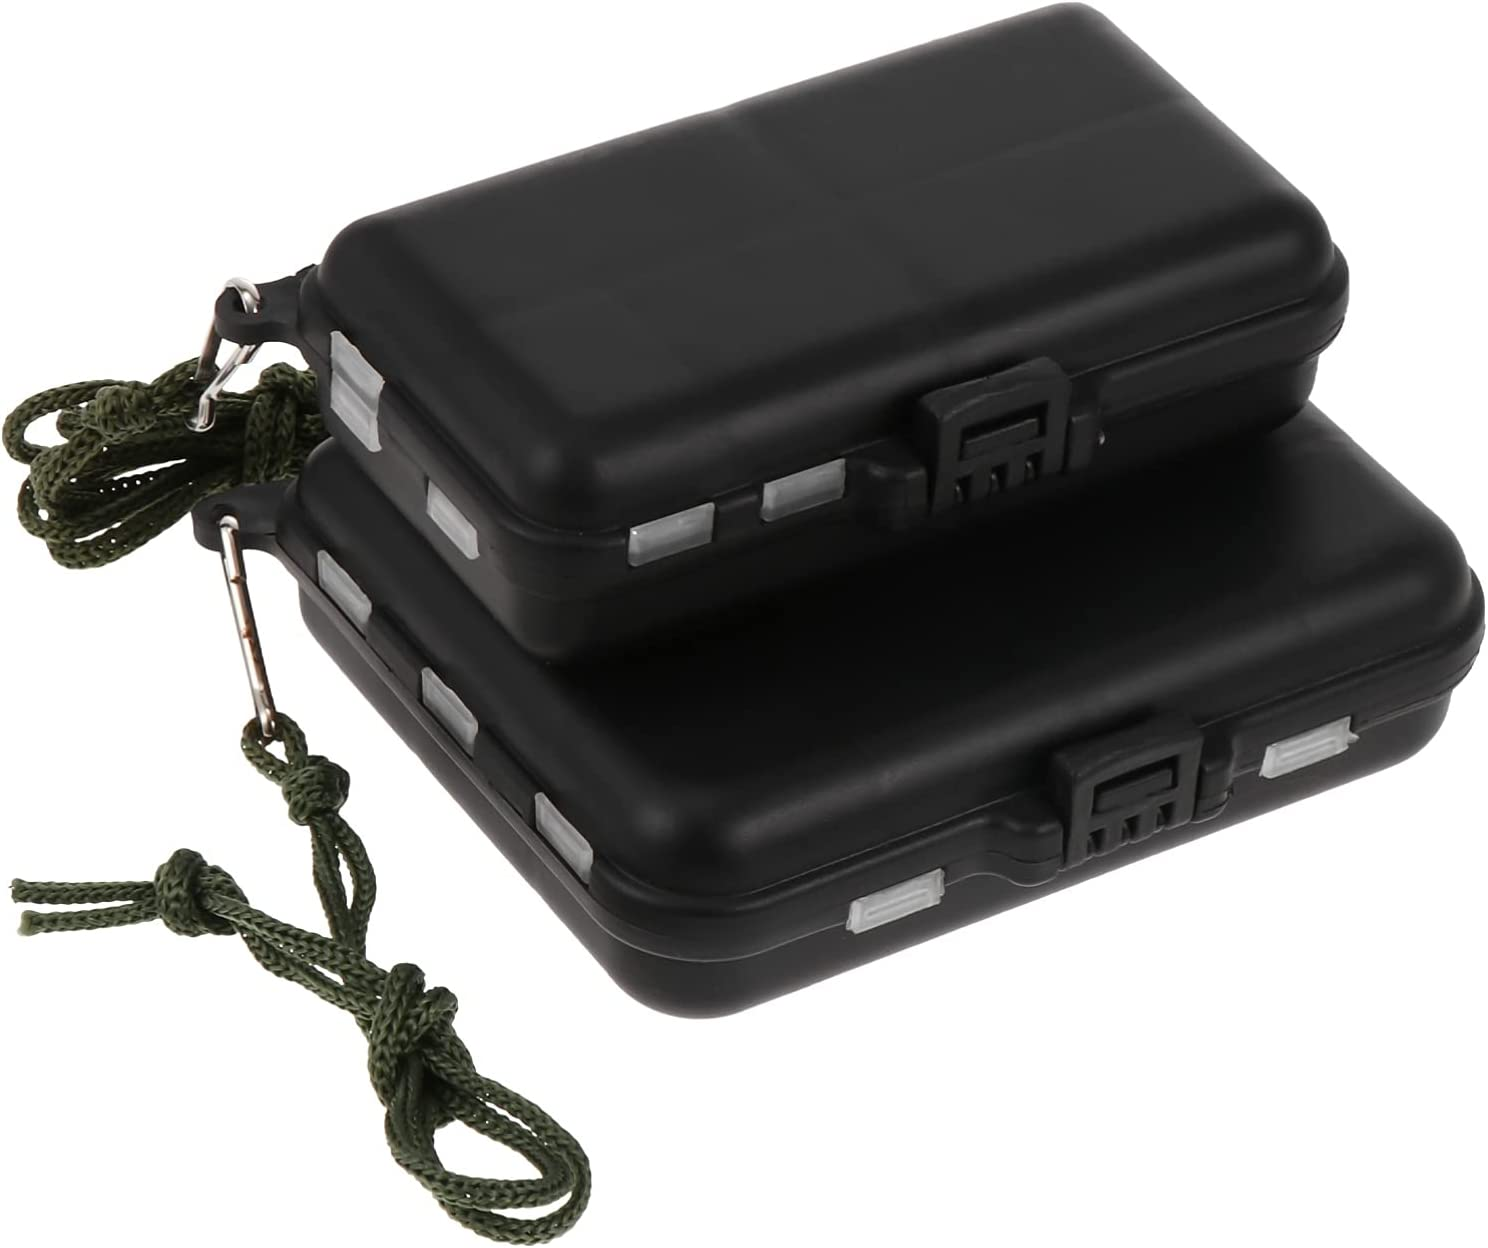 BESPORTBLE Max 44% OFF 2pcs Tackle Special price Boxes Fish Wat Compartment Storage